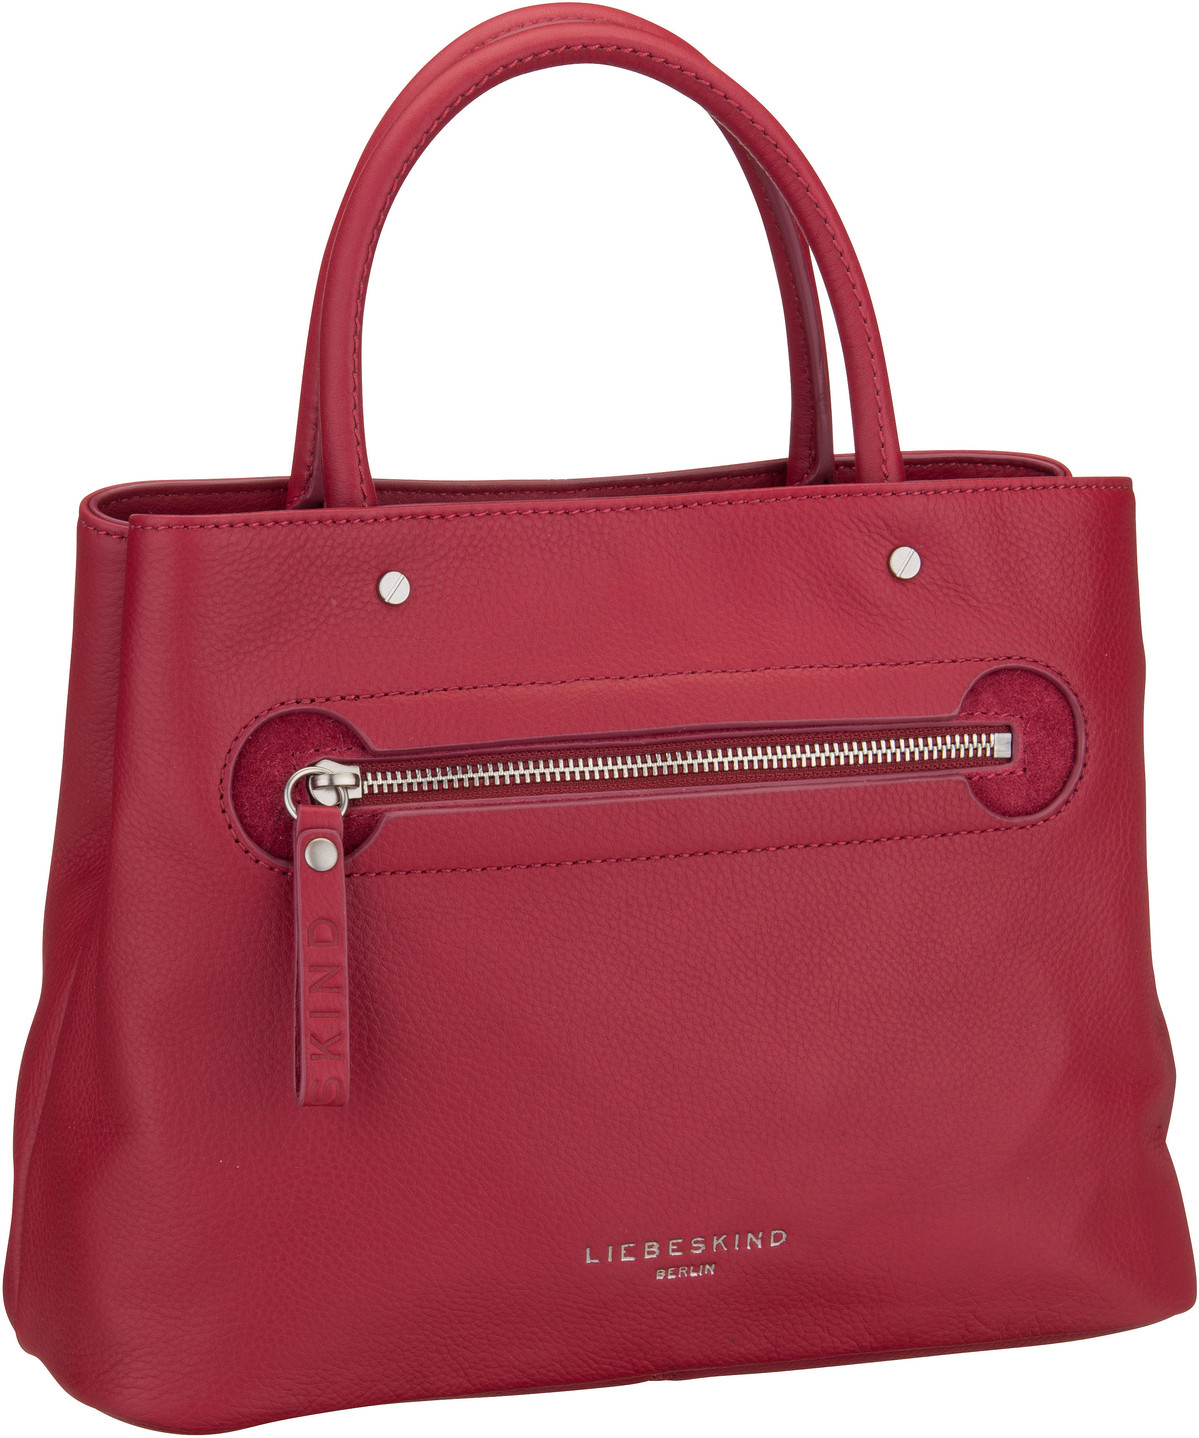 Berlin Handtasche Mini Daily 2 Satchel S Dahlia Red